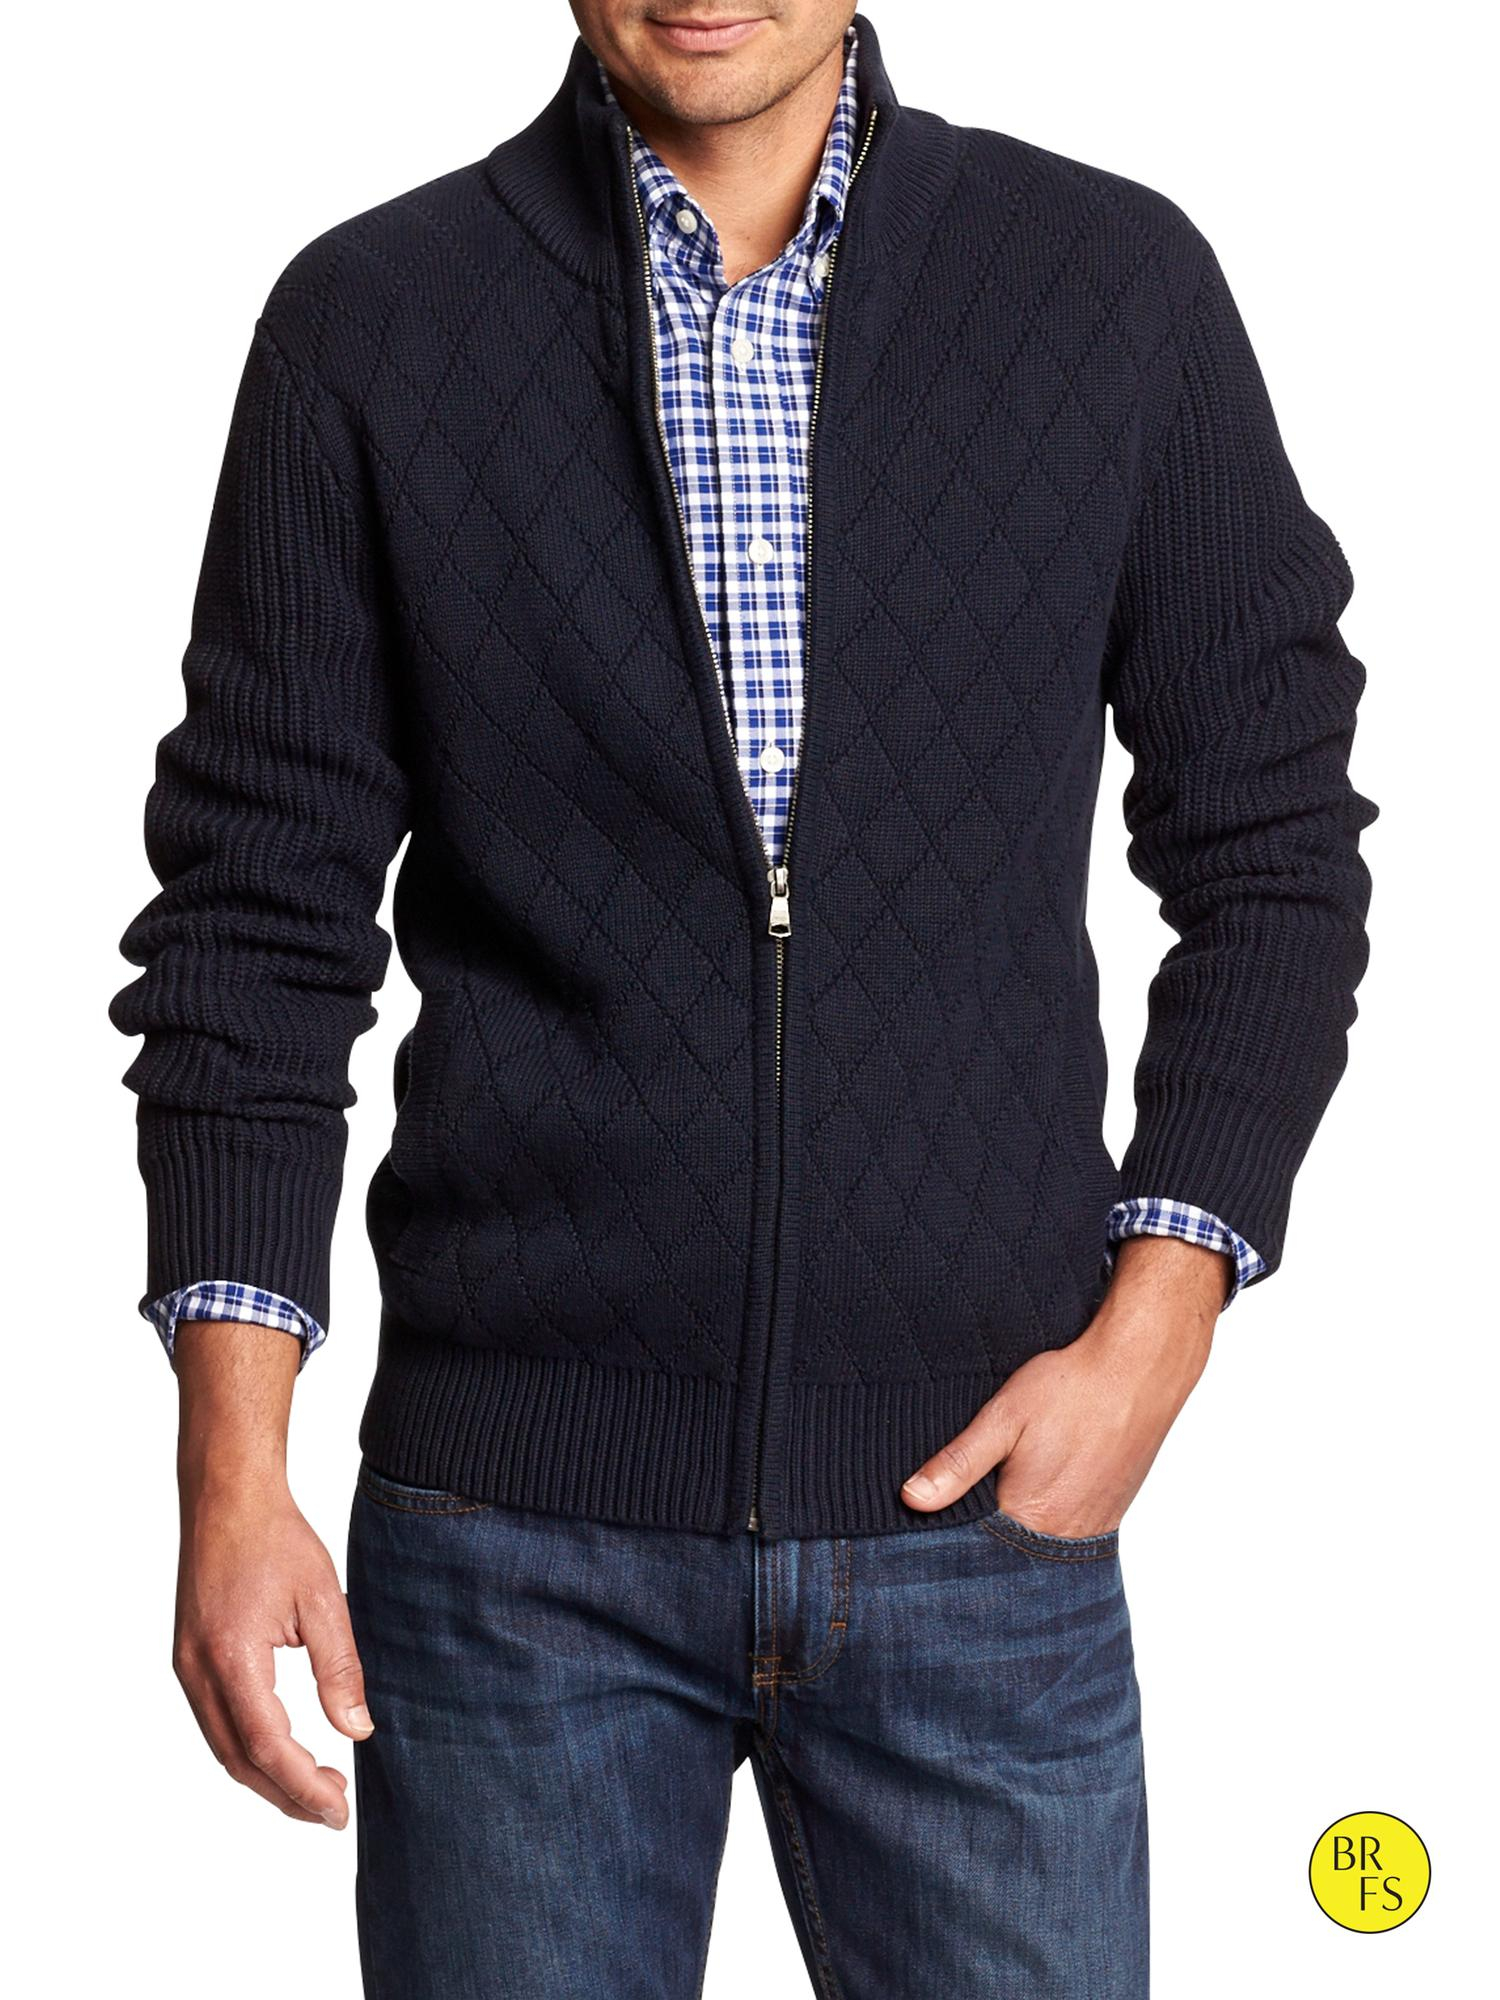 Lyst - Banana Republic Factory Quilted Full-Zip Mock-Neck Sweater in ... 0709ce030